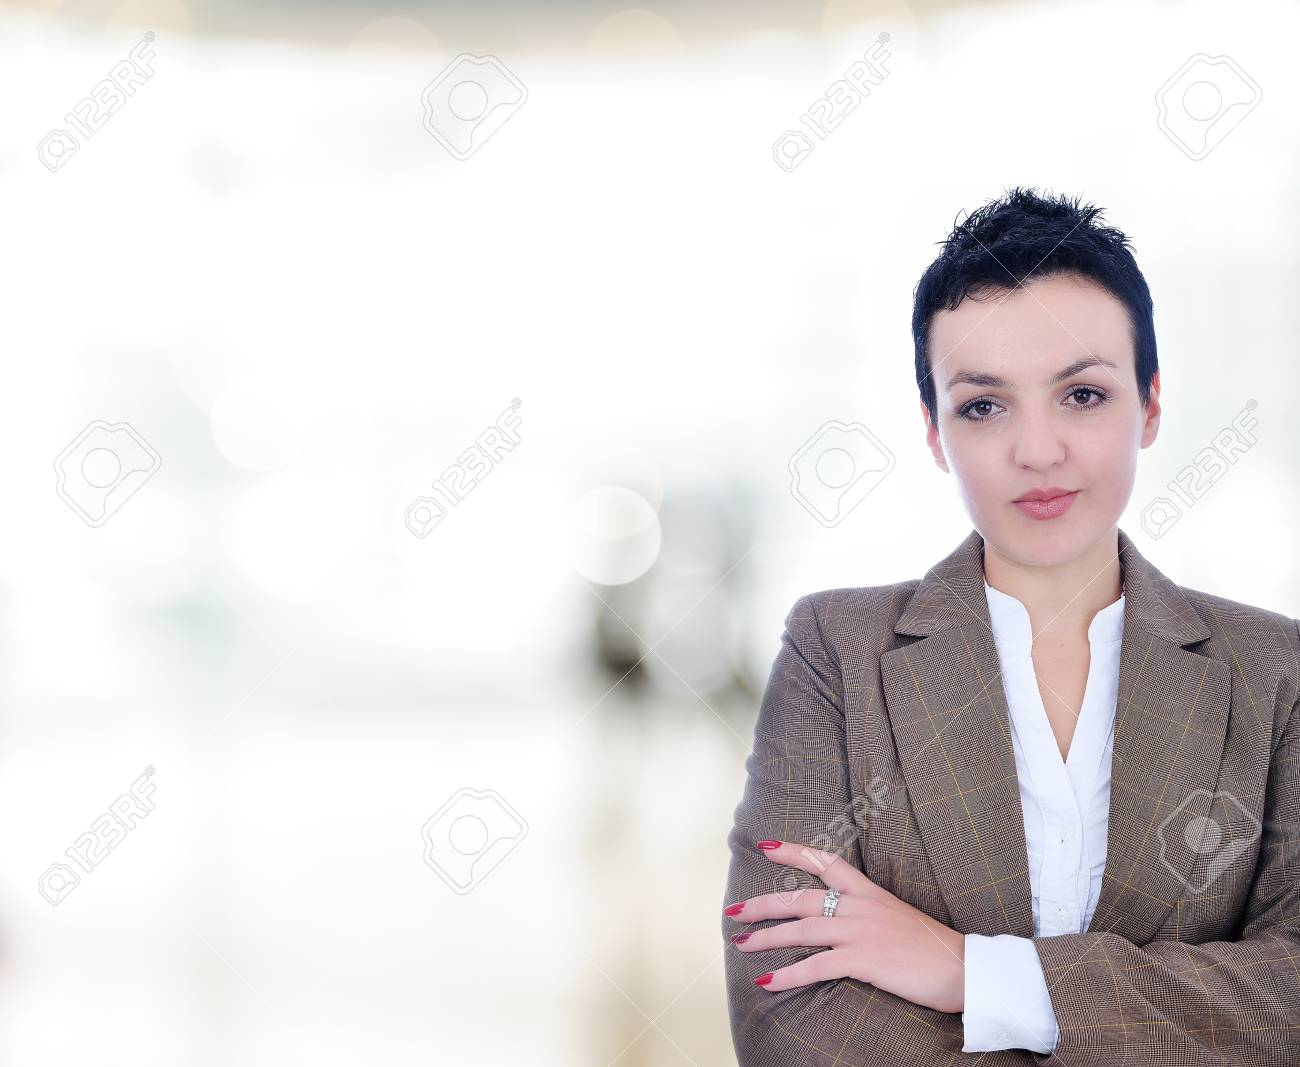 Closeup portrait of cute young business woman smiling in modern bright building Stock Photo - 9208170